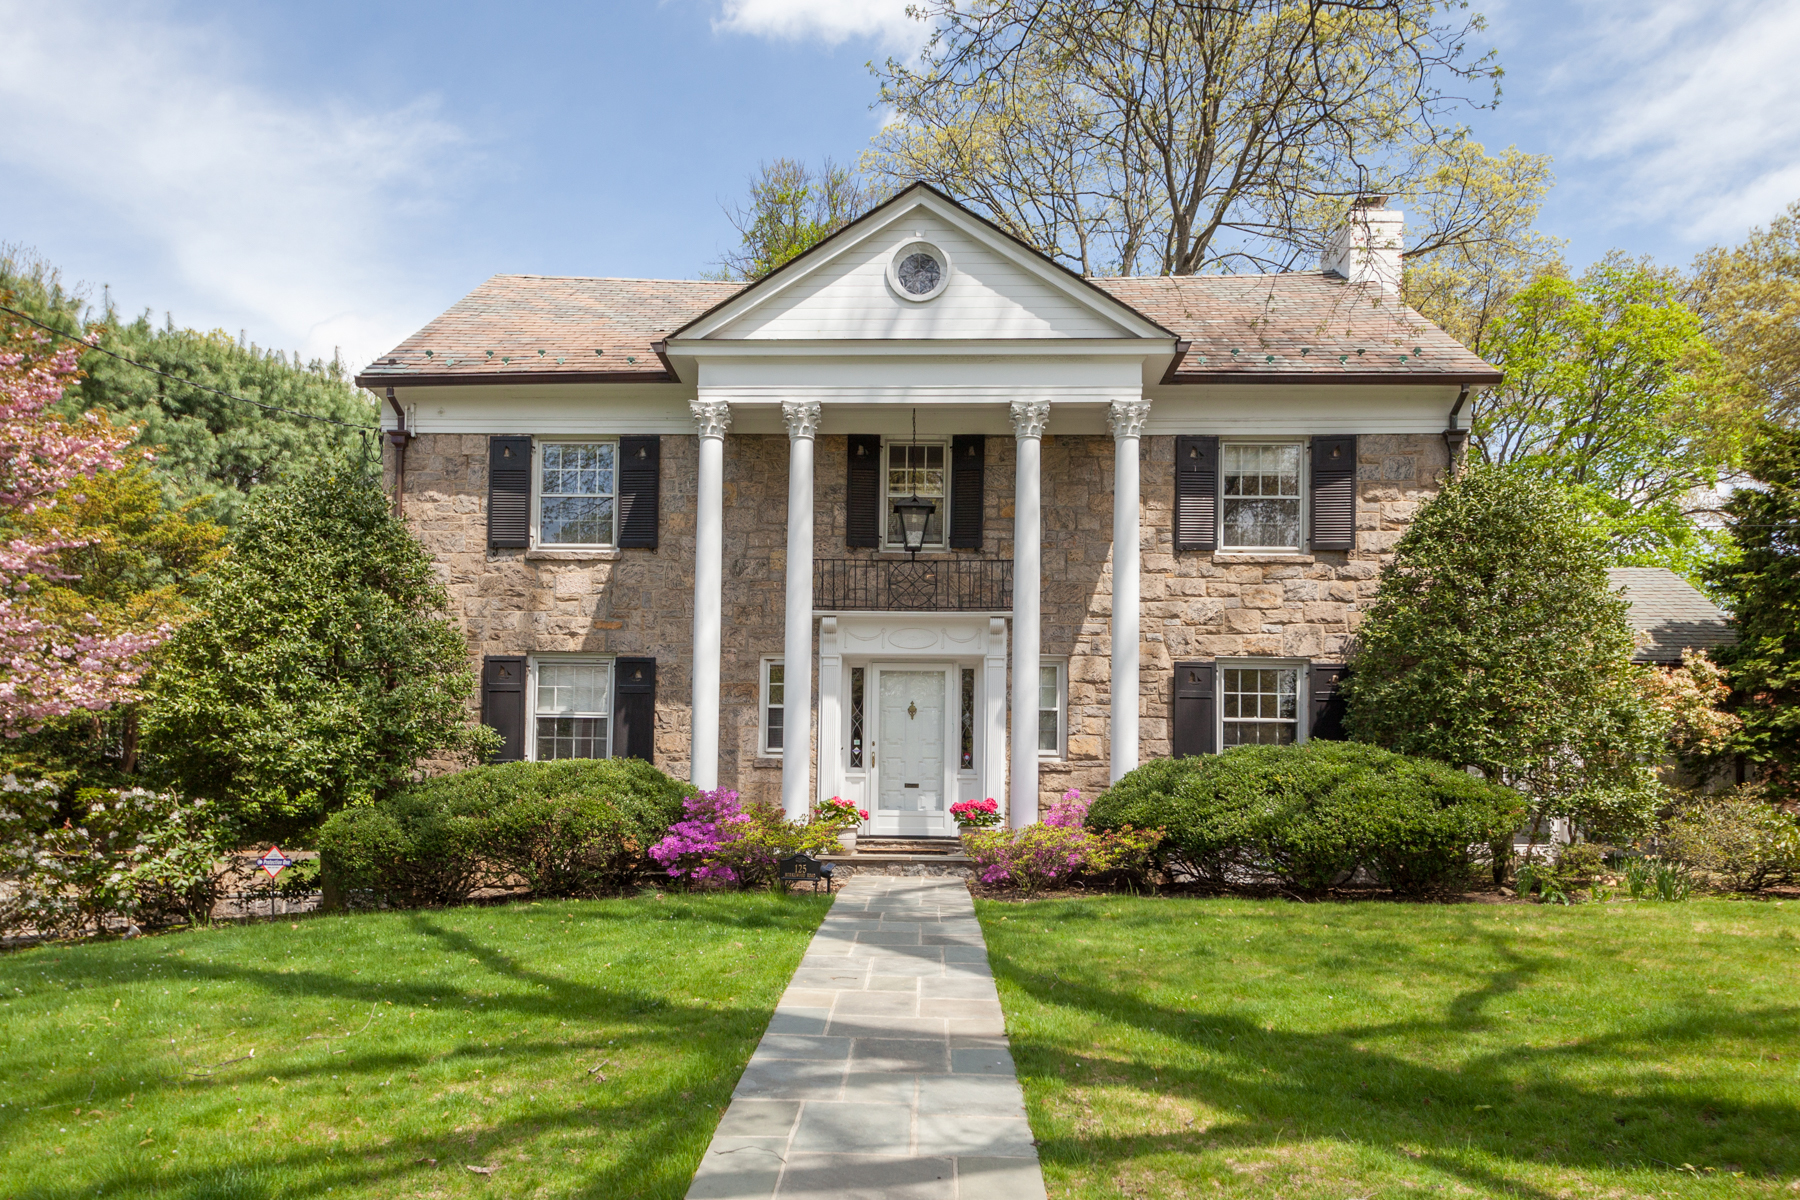 Single Family Home for Sale at Welcome To 125 Burkewood Road 125 Burkewood Road Mount Vernon, New York 10552 United States